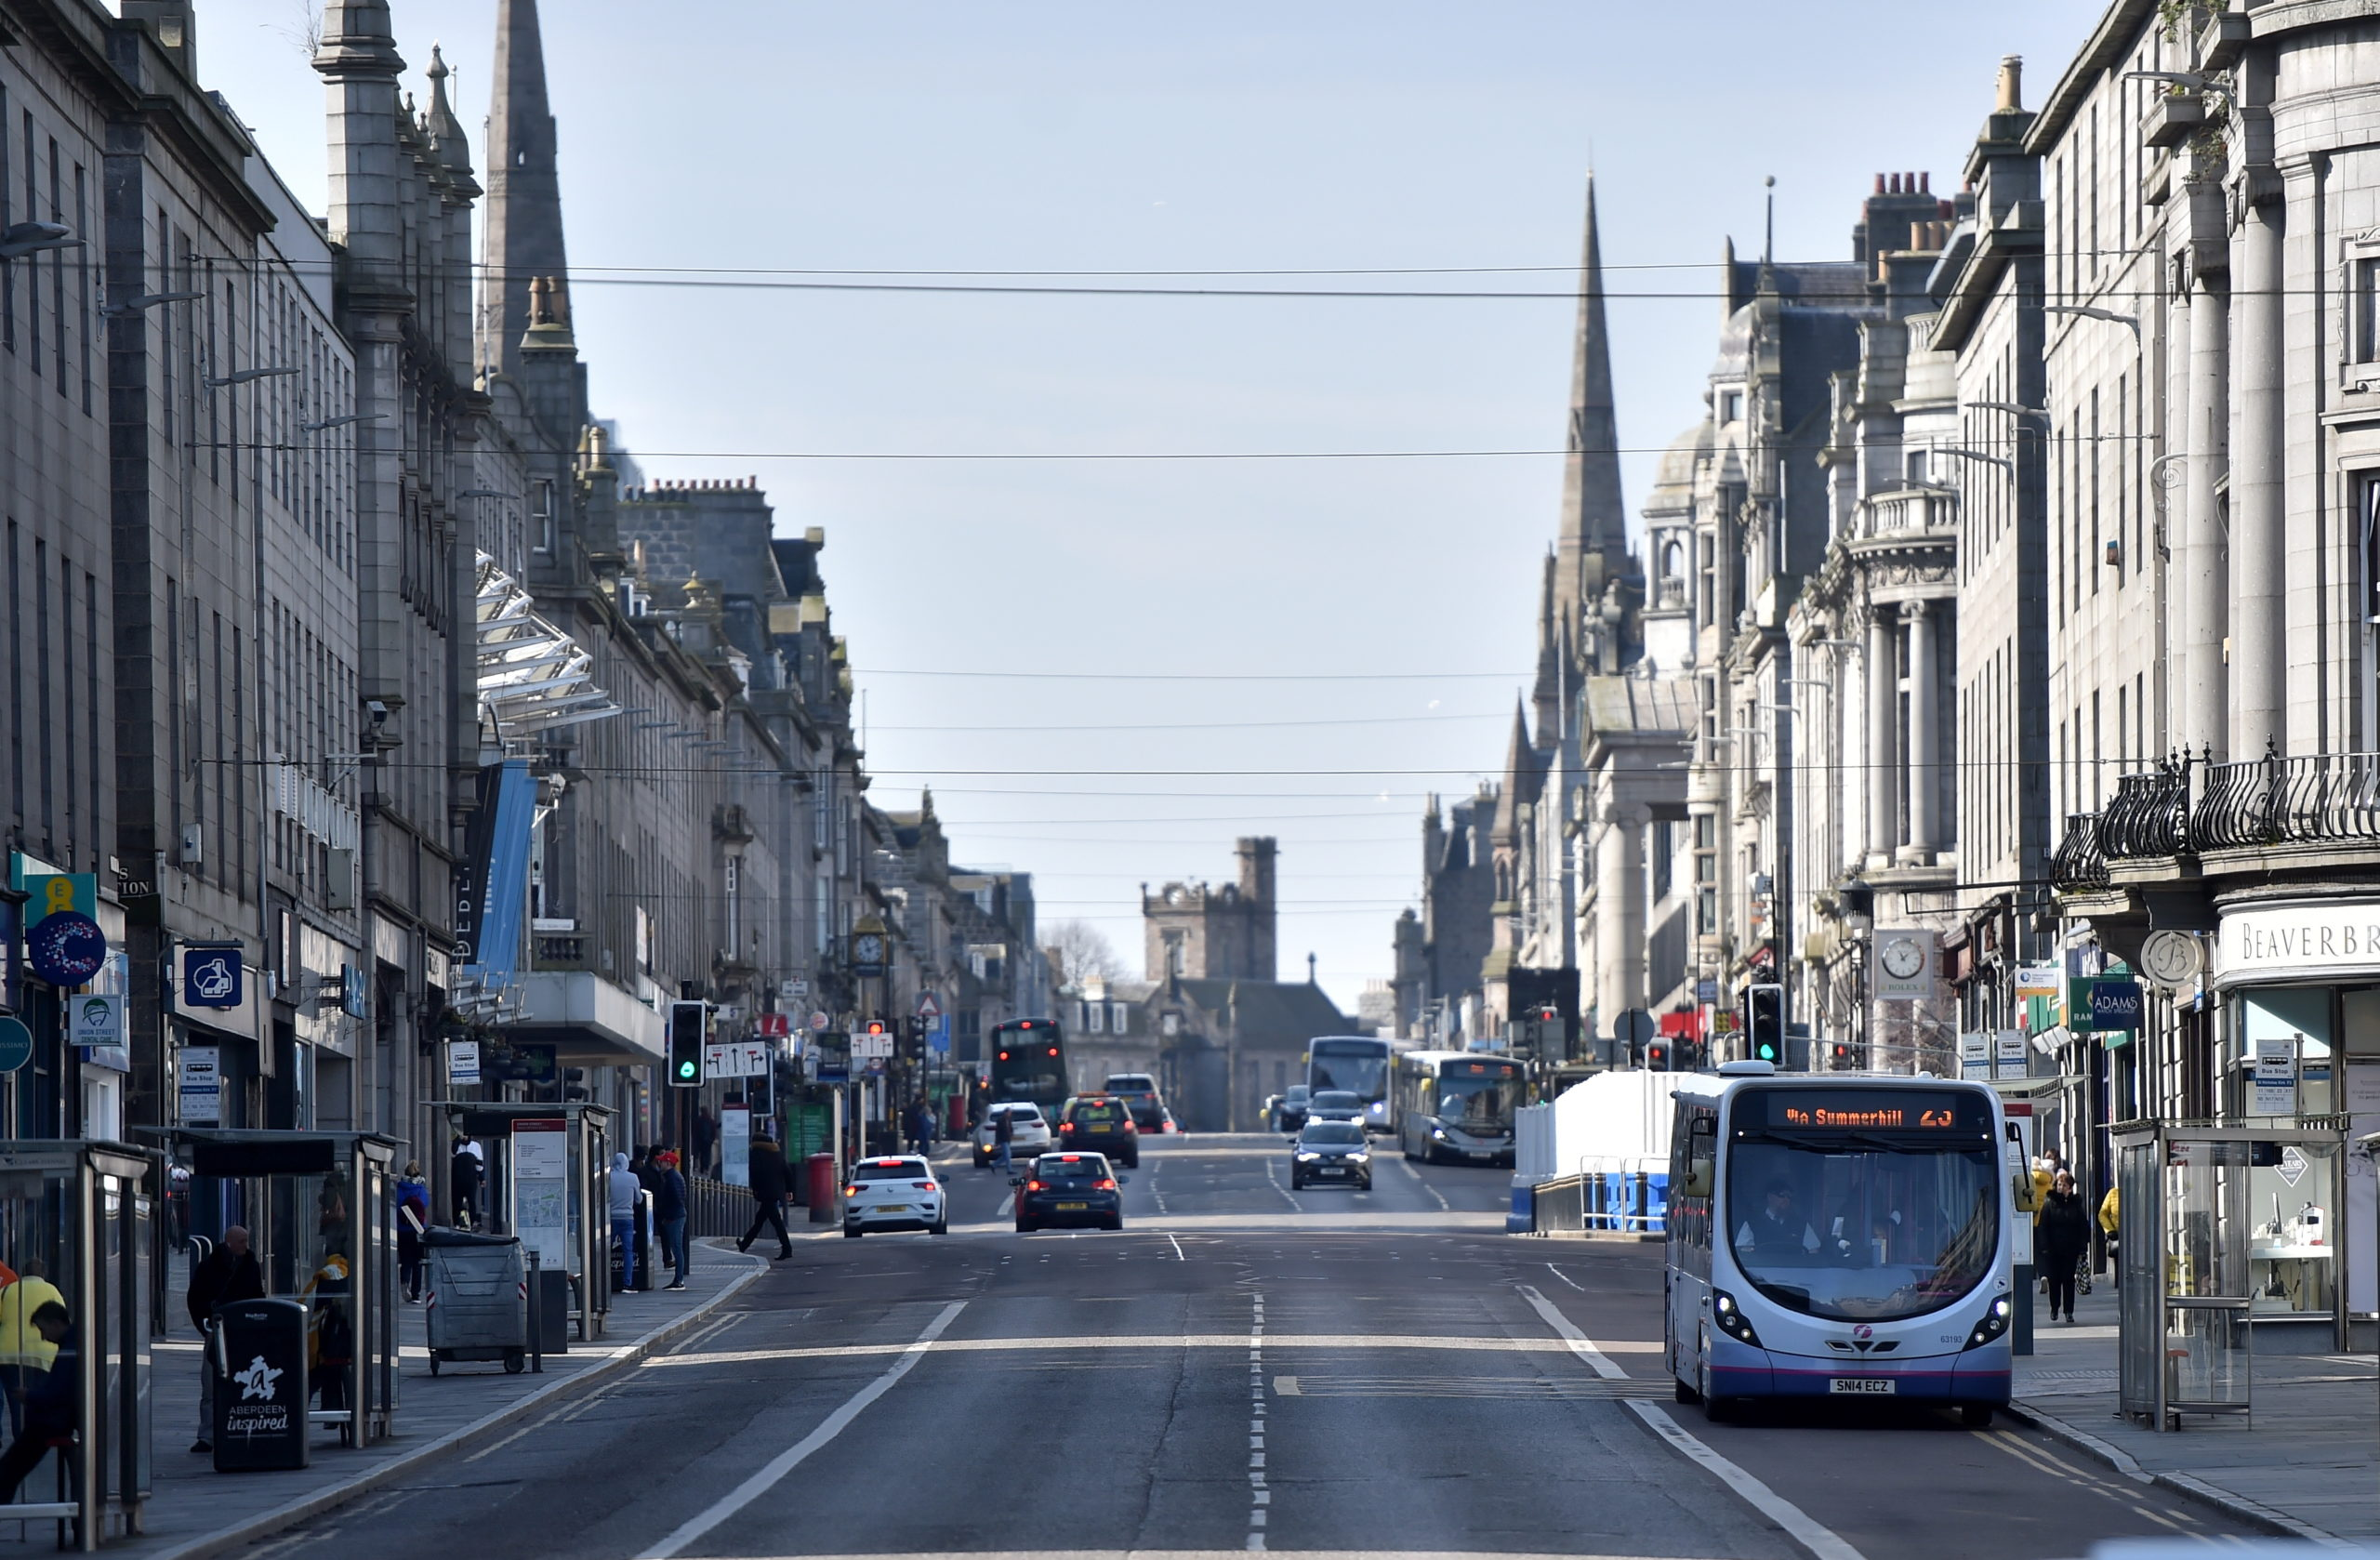 The level of pollution in Aberdeen has dropped